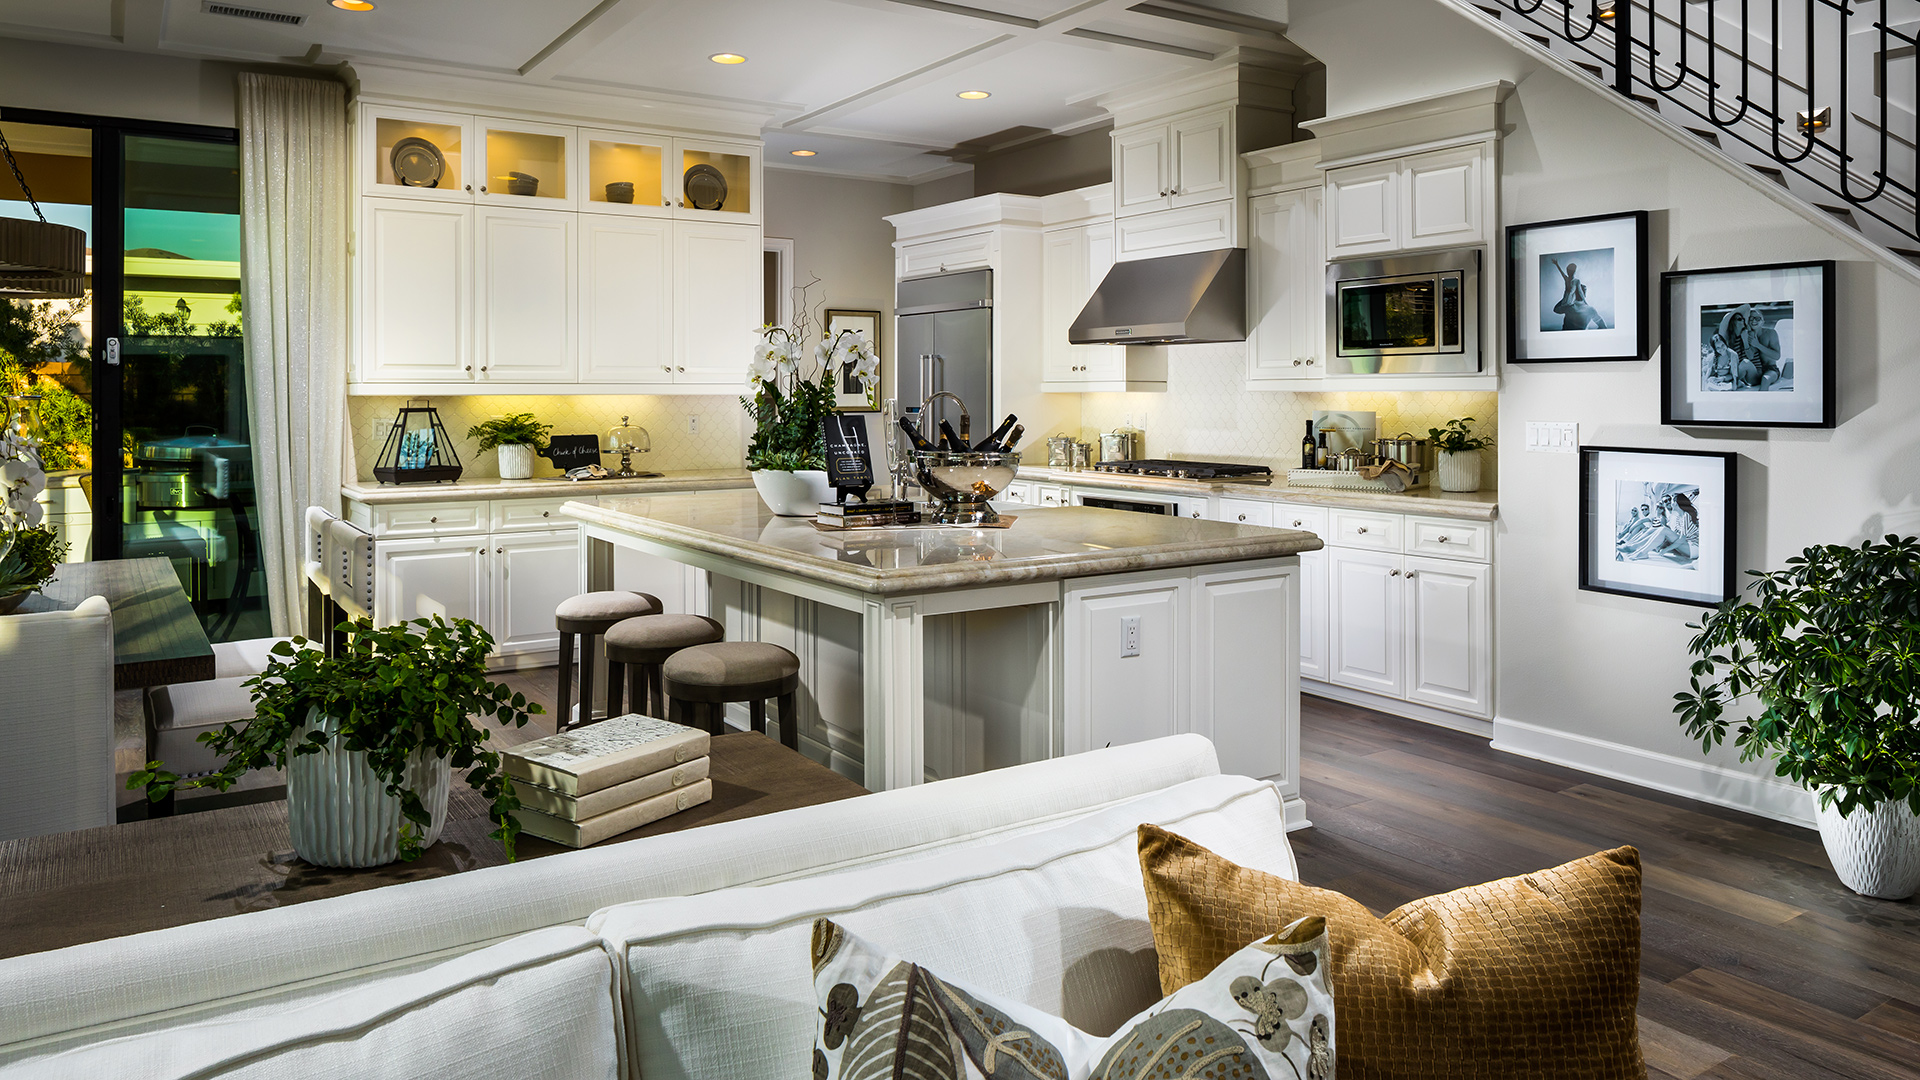 Gourmet kitchen with large center island.